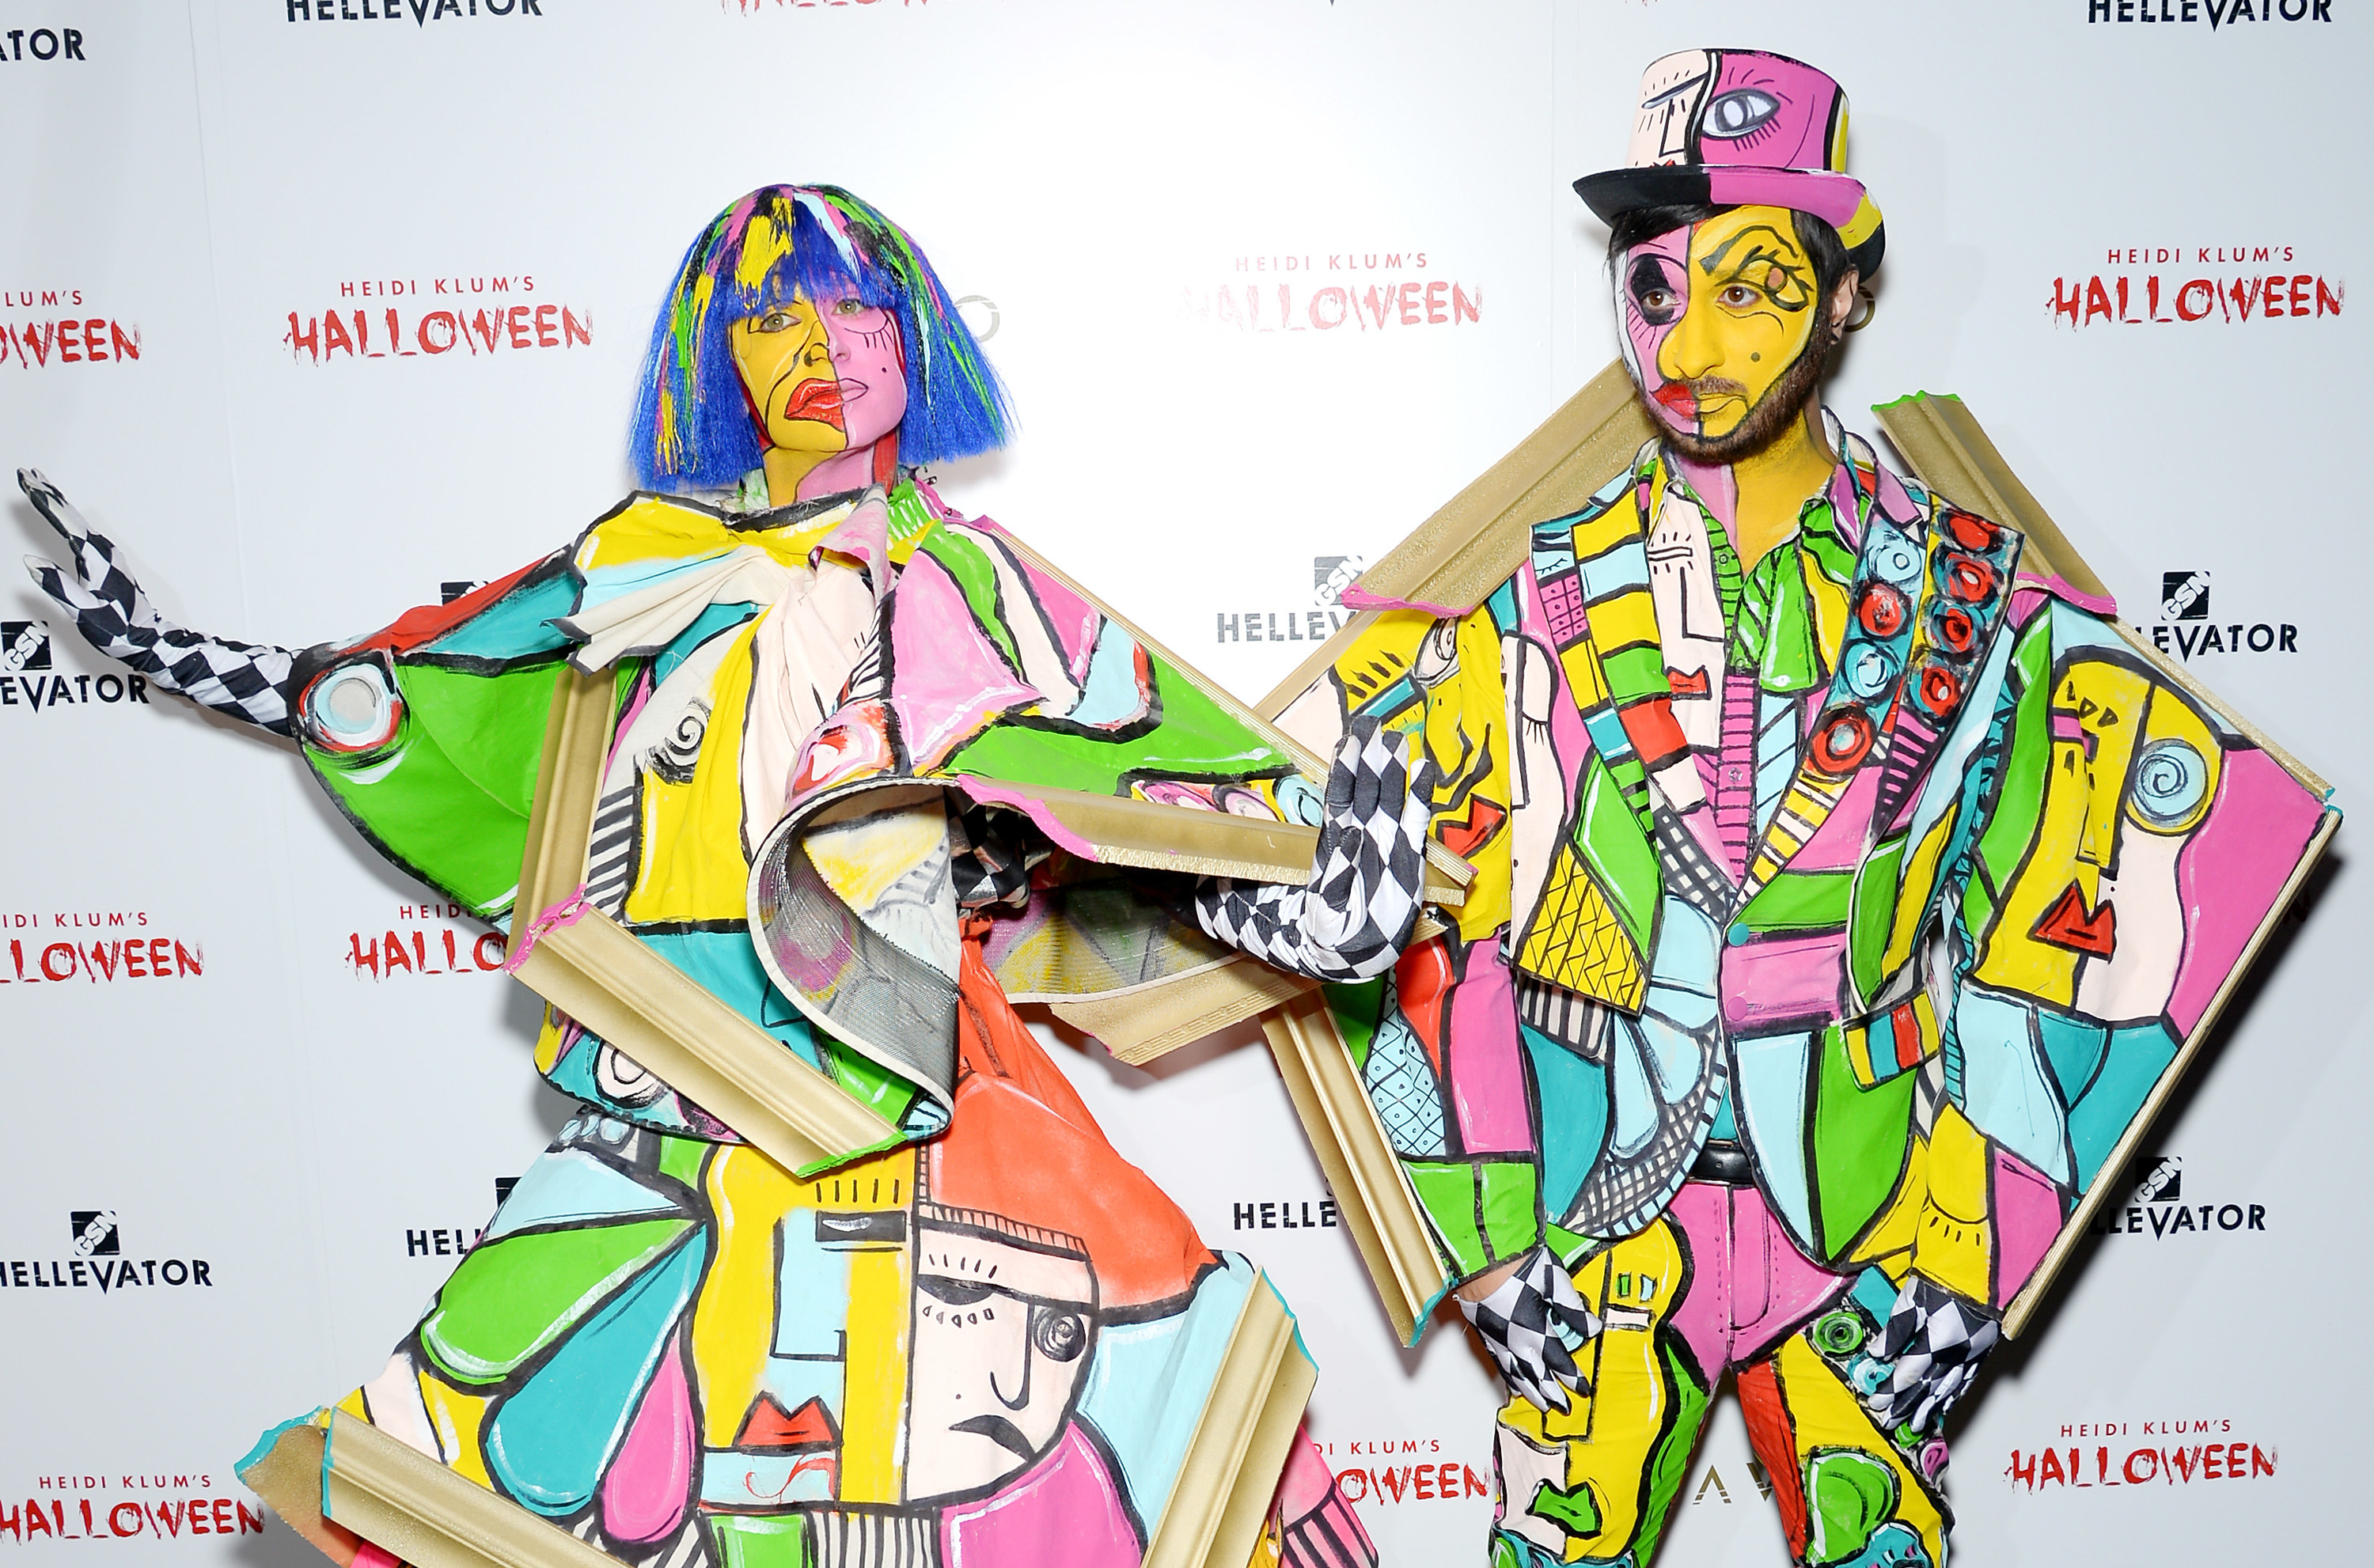 Christian Siriano and a man in wildly geometric costumes that look like cut up paintings.